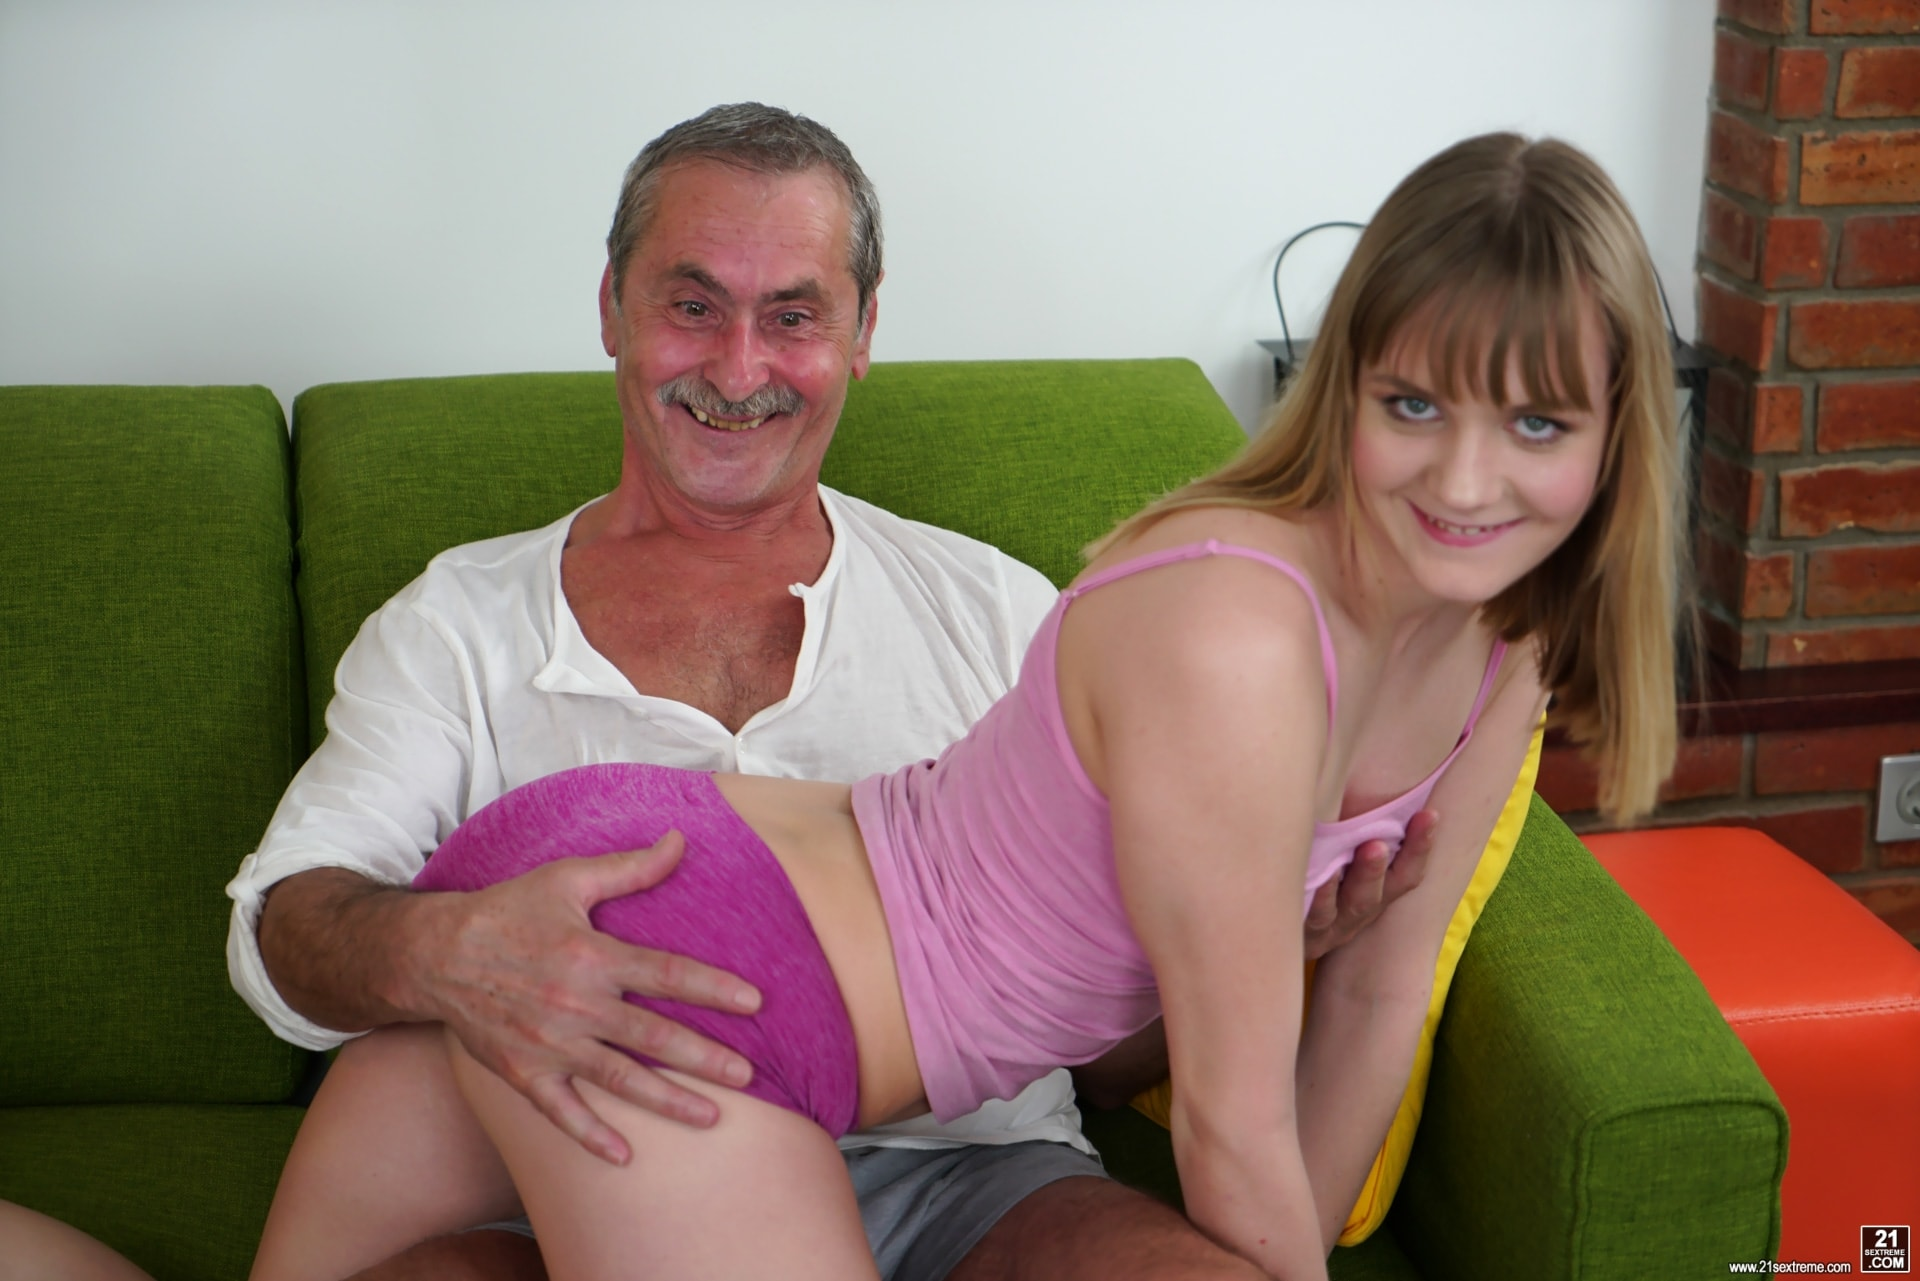 21Sextury 'Sexual Wisdom' starring Lucette Nice (Photo 70)